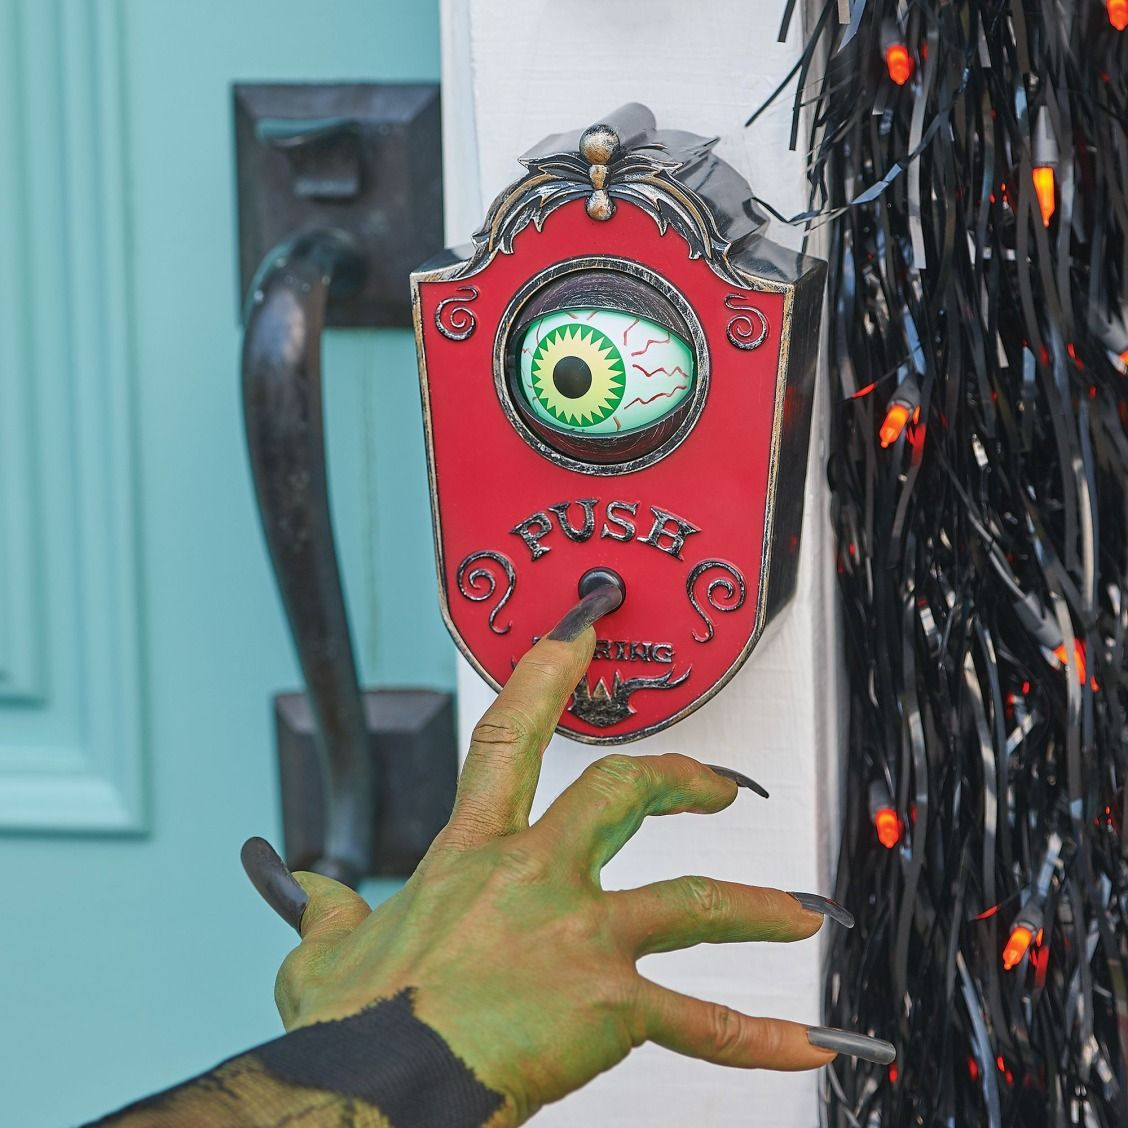 An eye-opening door prop that is sure to spook guests and trick-or-treaters!